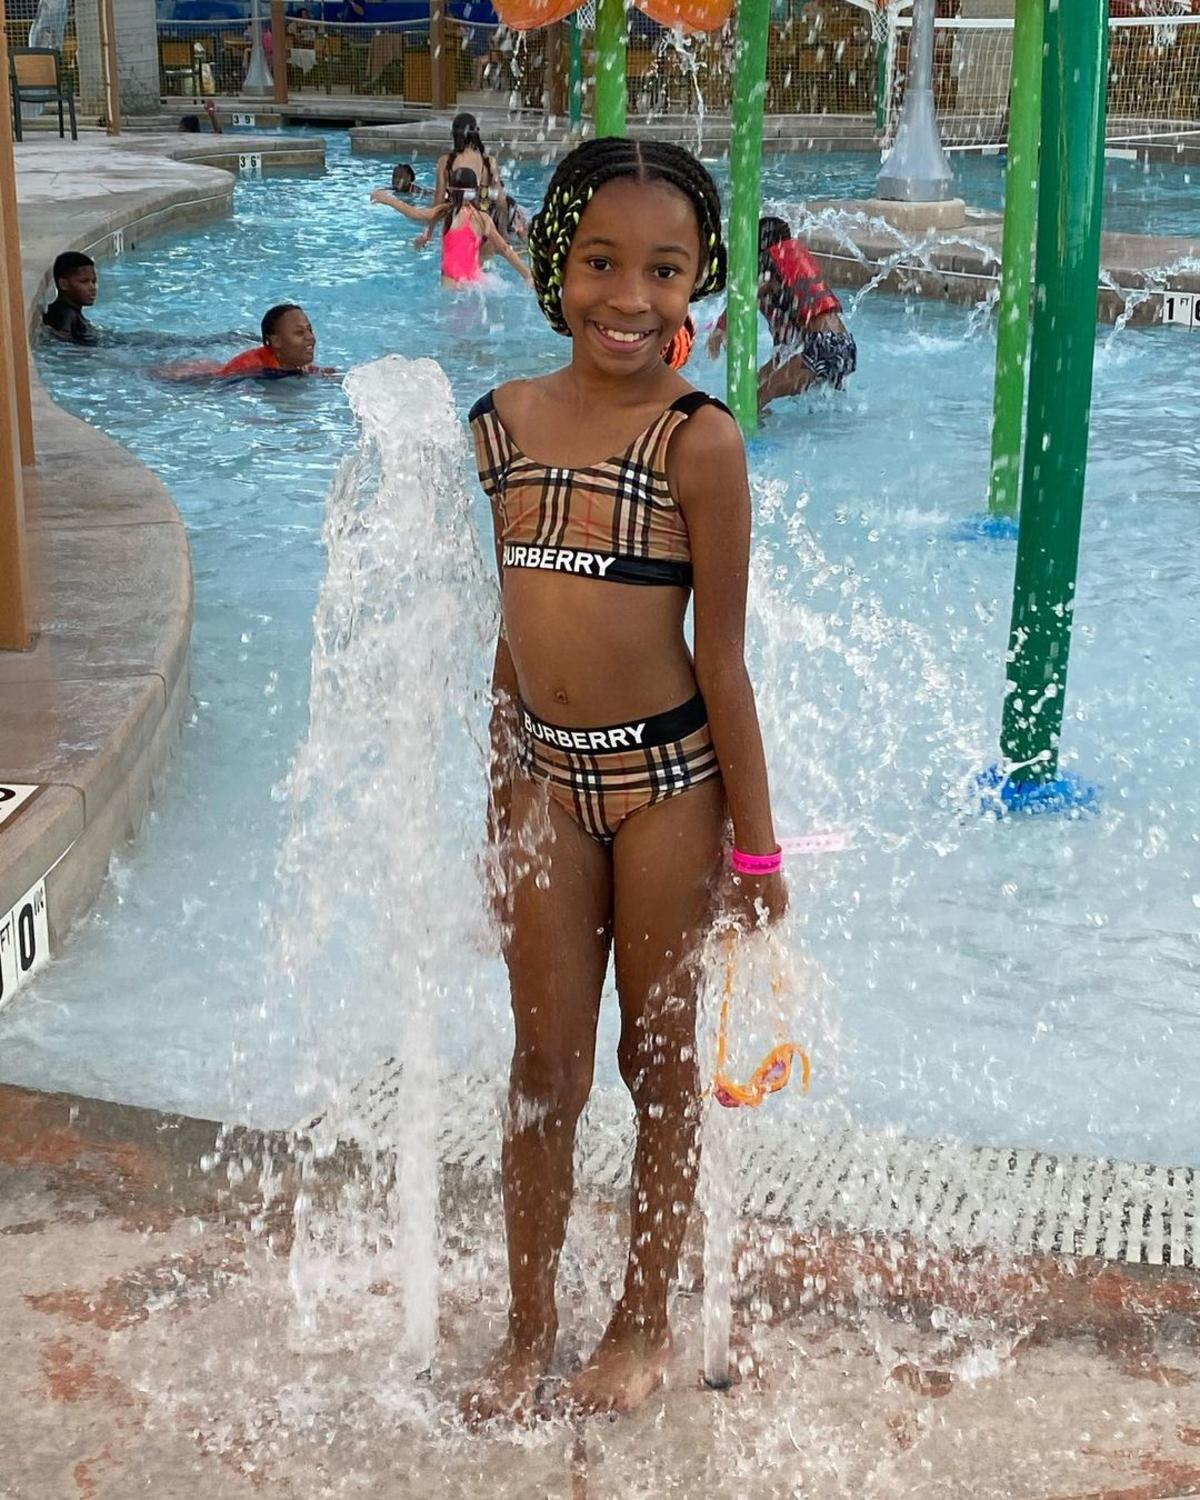 Little girl smiling by a splashing geyser in front of an indoor pool at Zehnder's Splash Village Hotel & Waterpark in Frankenmuth